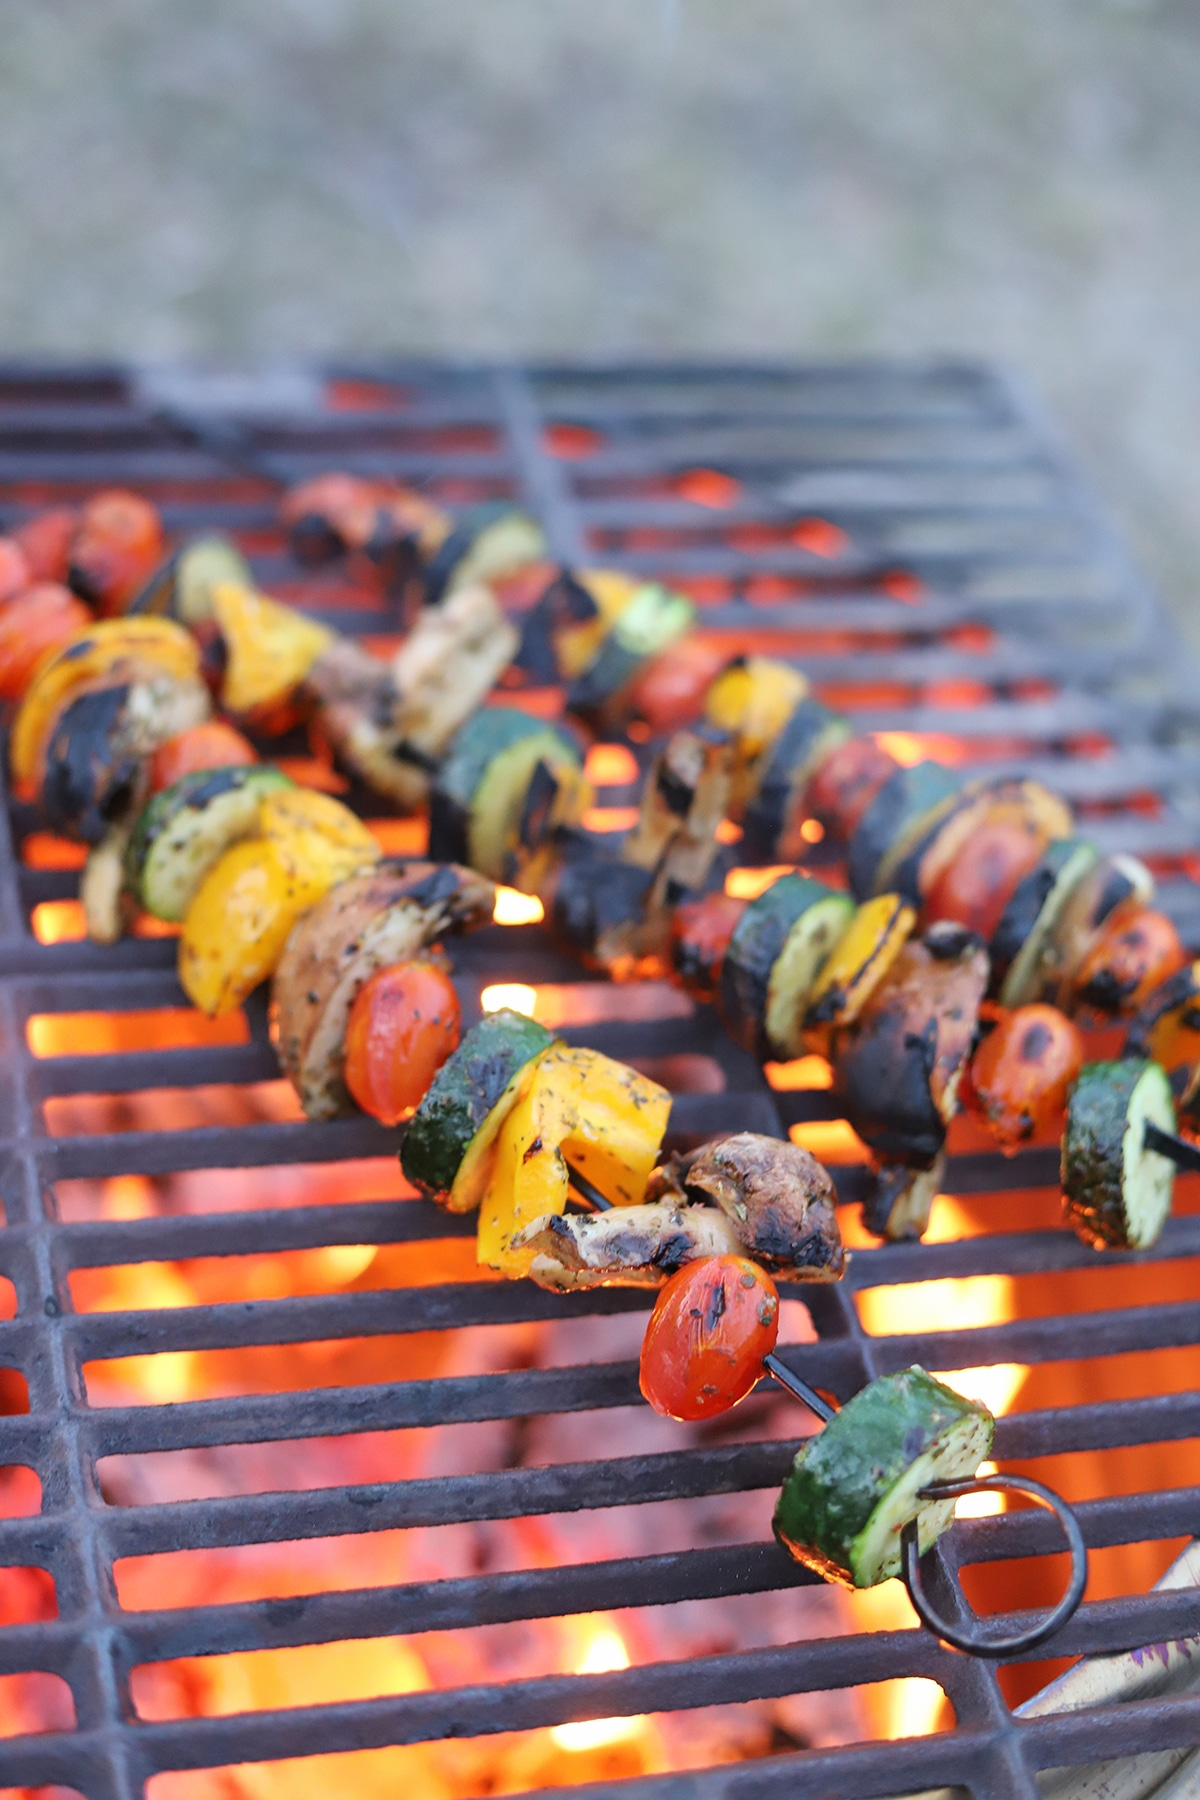 Vegetable skewers cooking on fire pit.